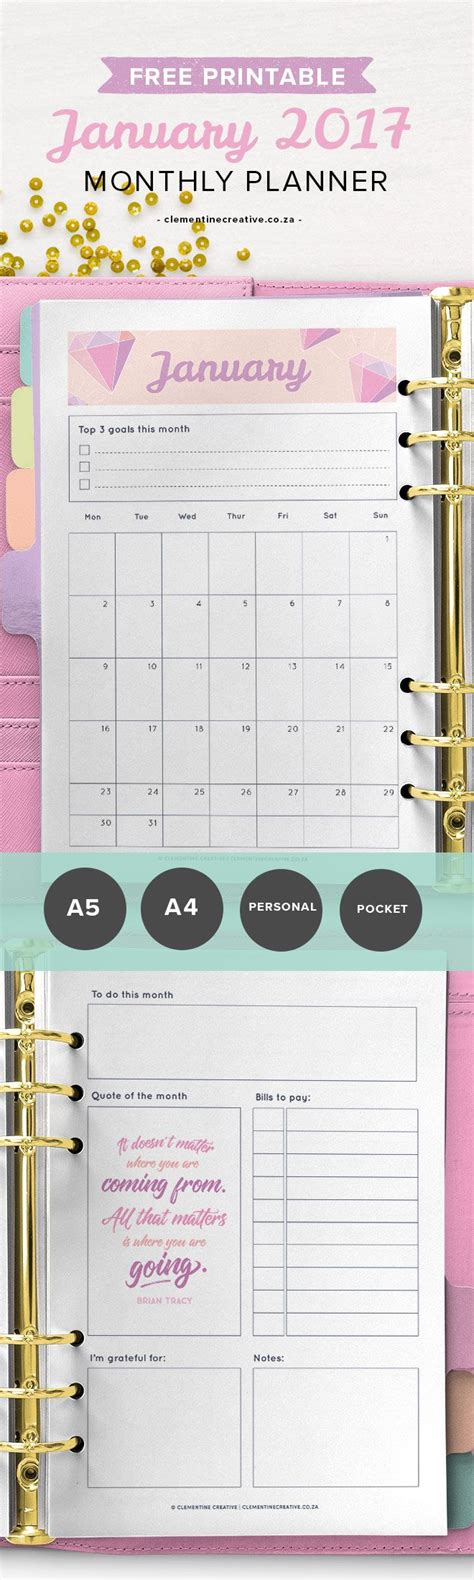 printable monthly pocket planner 25 best ideas about monthly planner template on pinterest